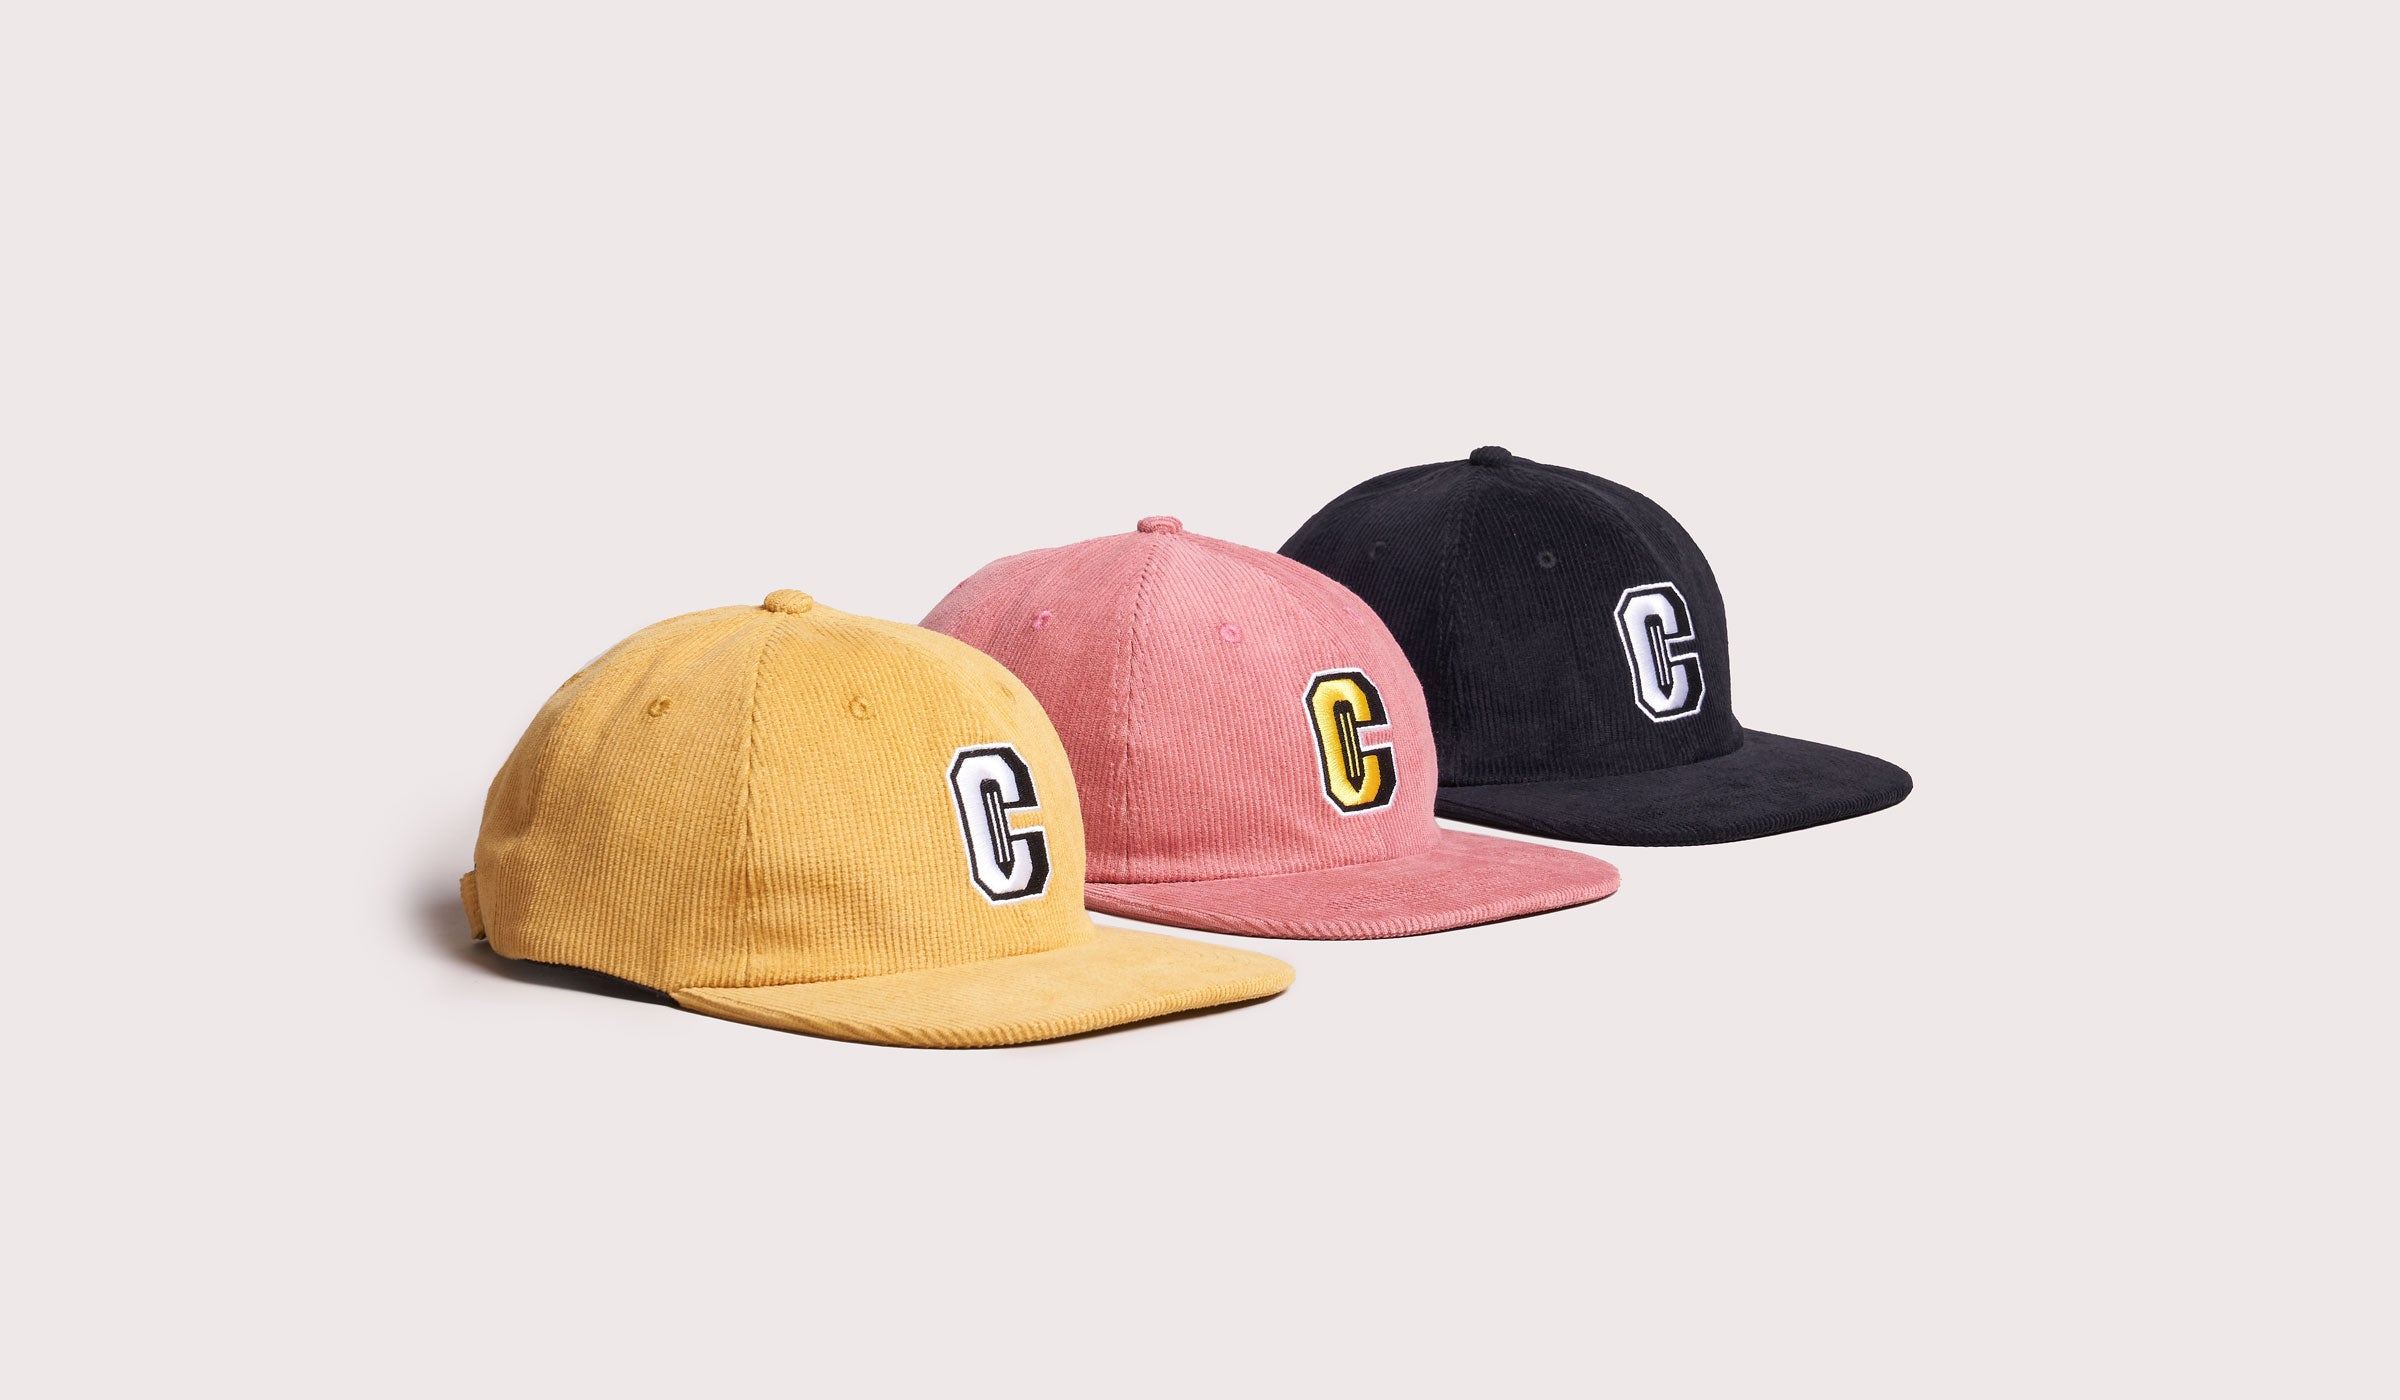 A group of three caps lined up from a side view.